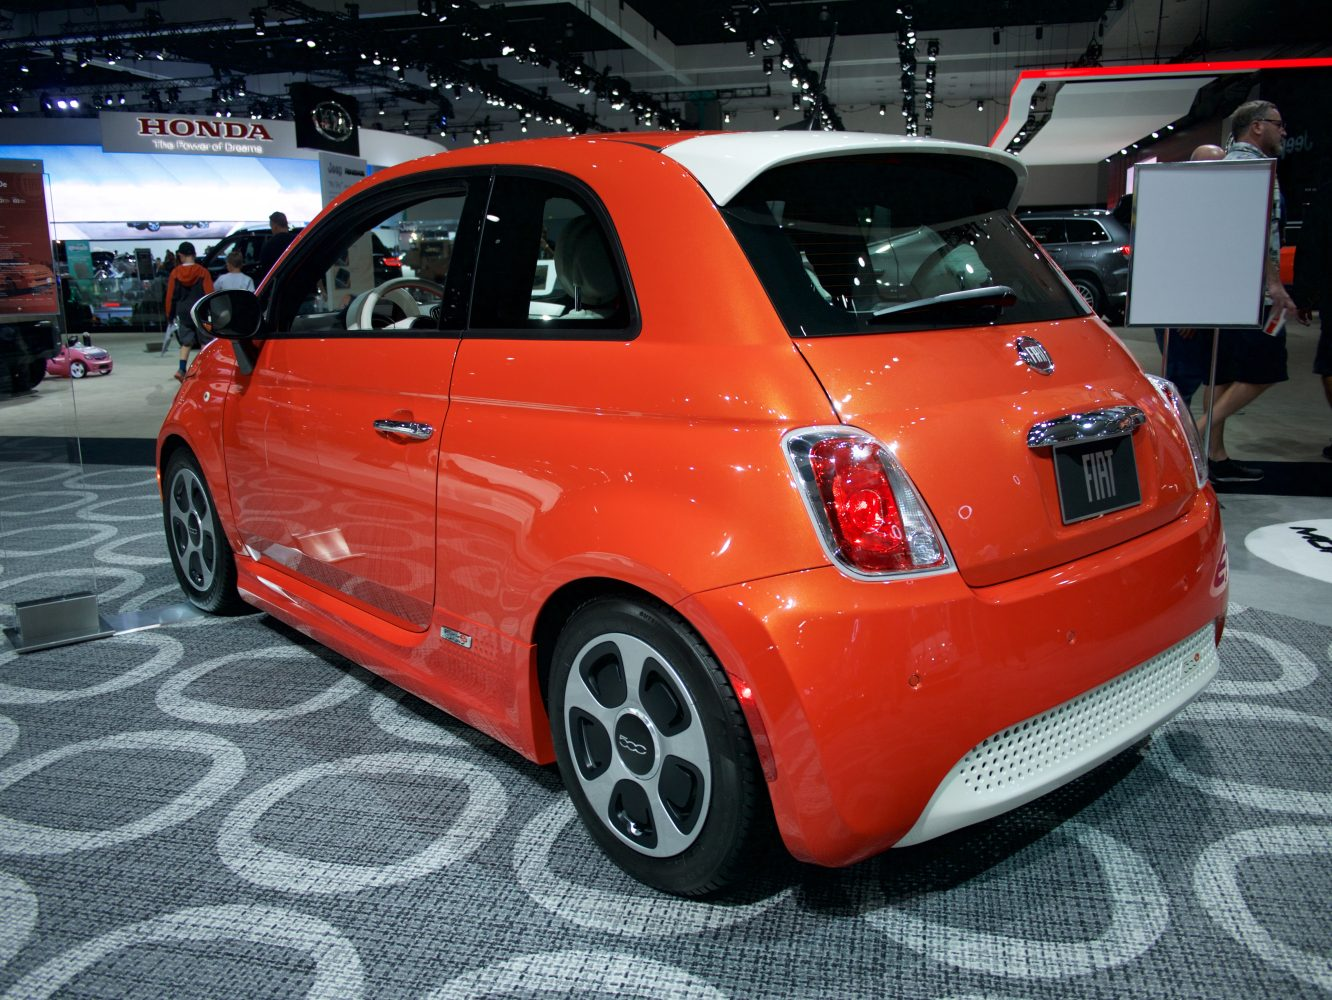 FCA investing $789 million in new assembly line to produce 80,000 electric Fiat 500s annually